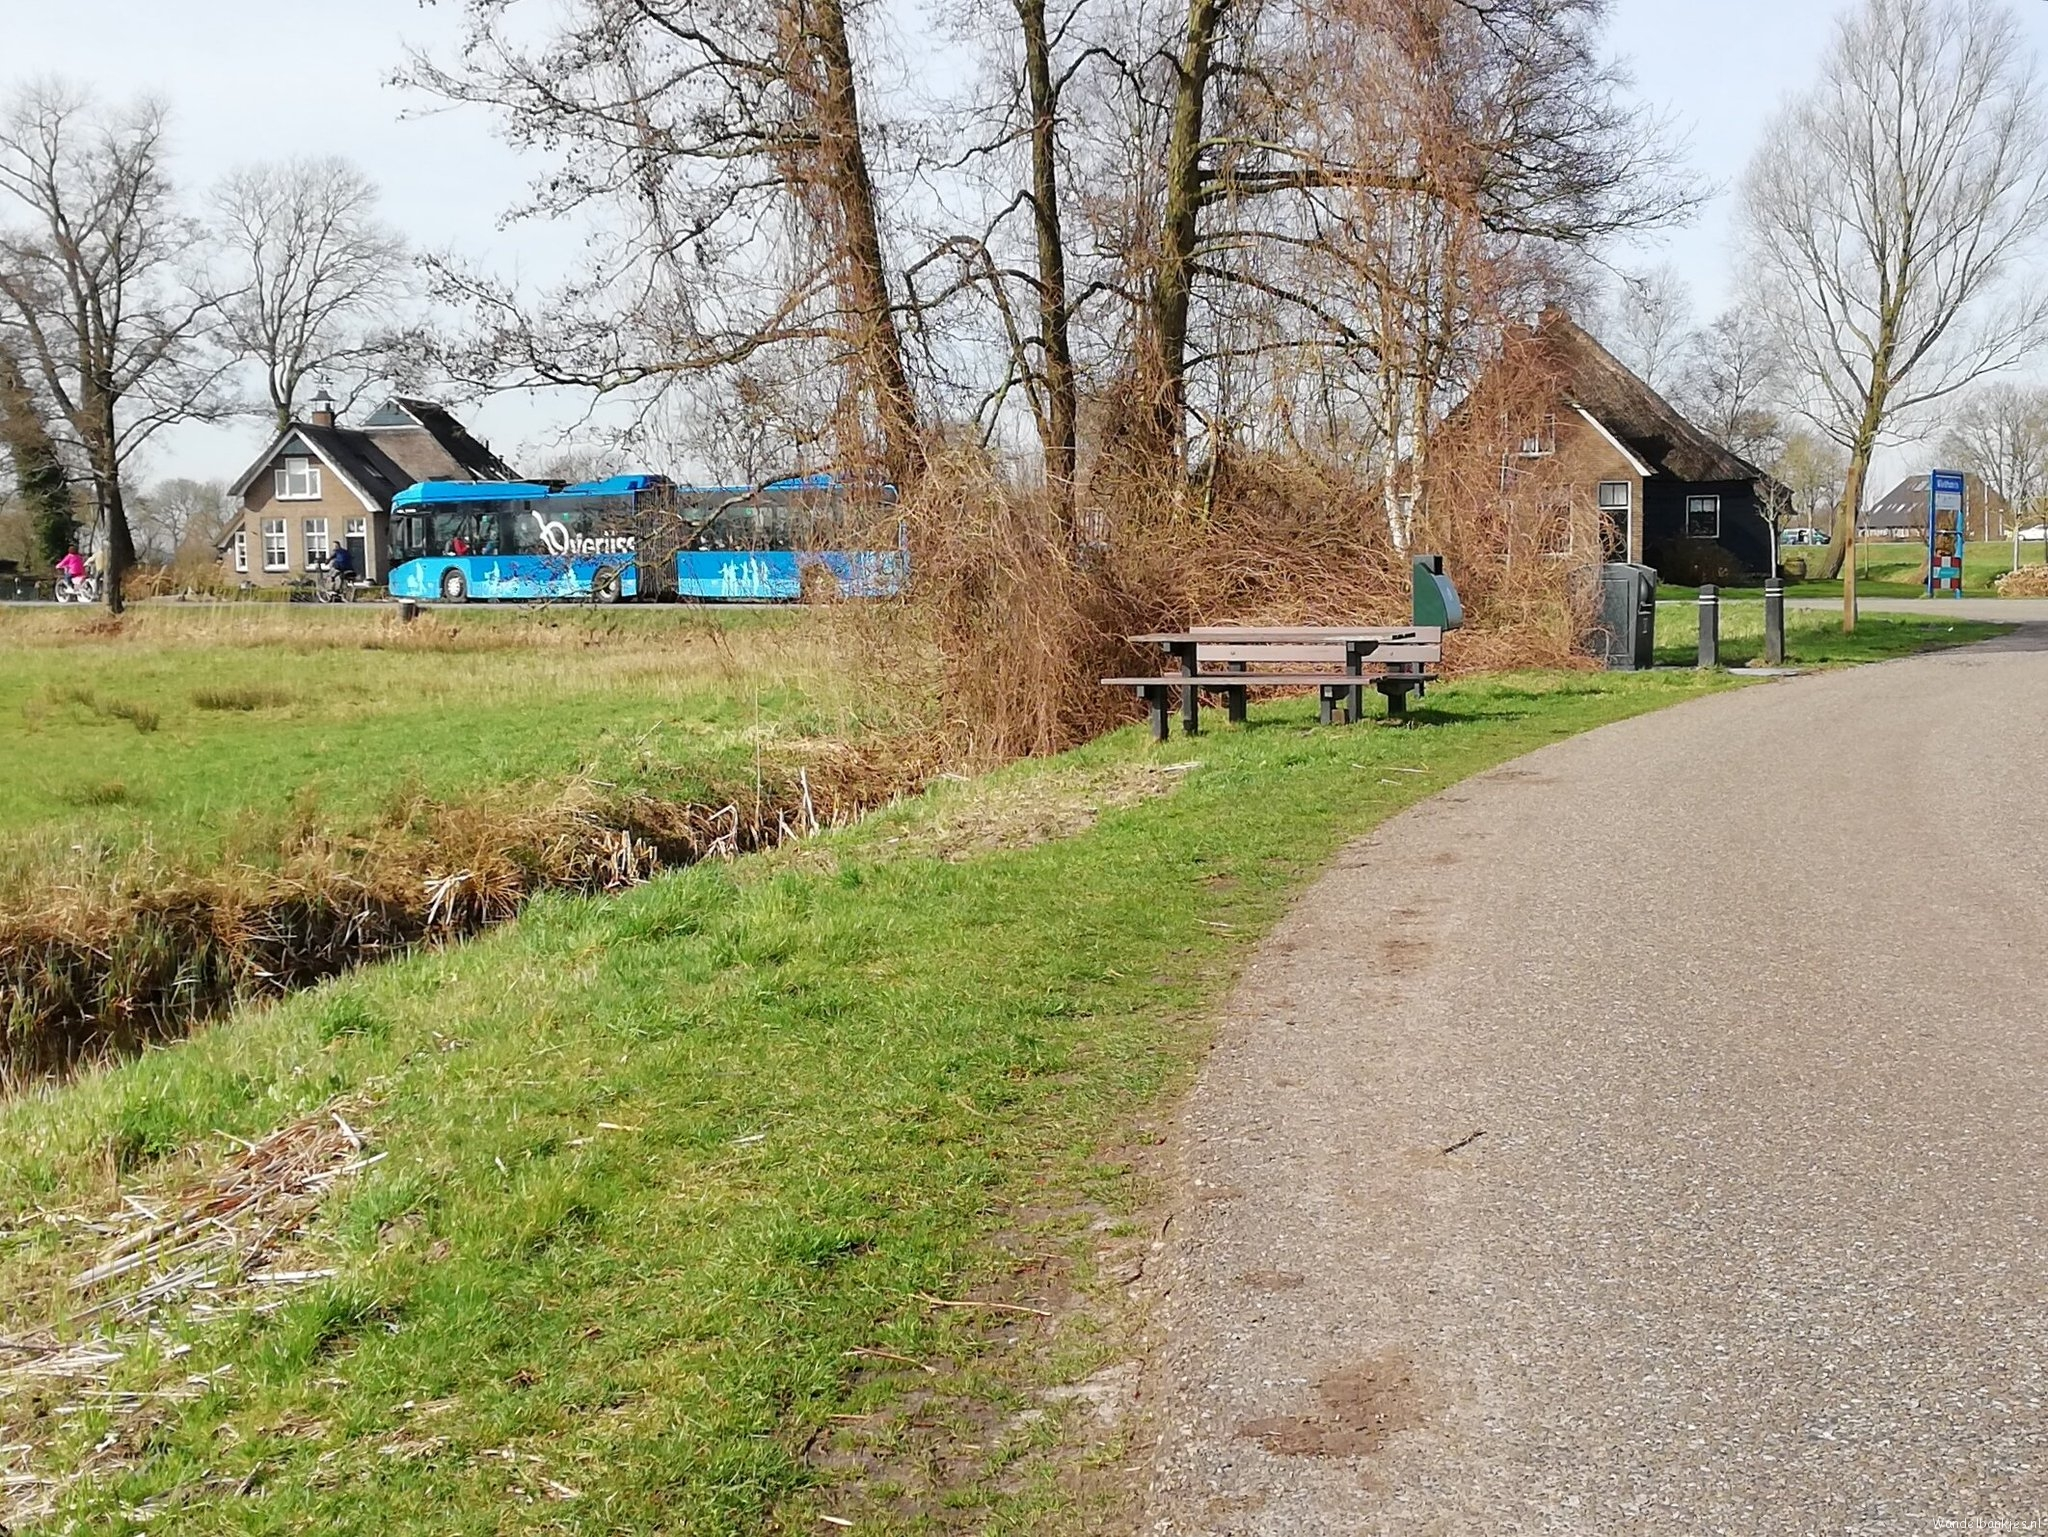 rt-walburgism-a-picnic-bench-to-the-auken-giethoorn-well-accessible-with-ov-walking-benches-https-t-co-f5ivxffsut